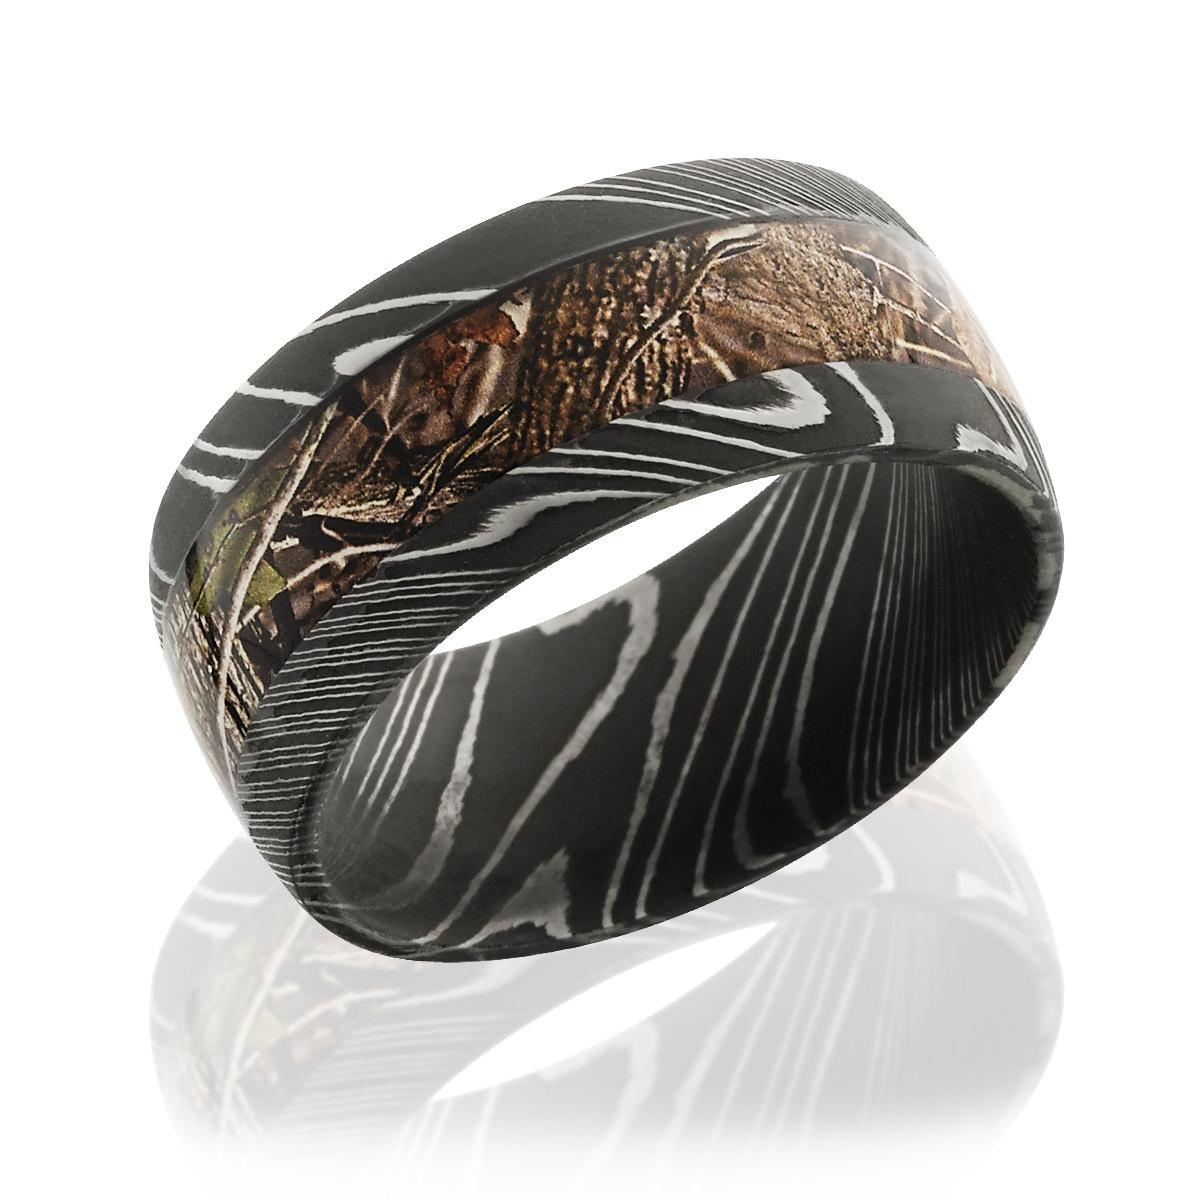 Unique Damascus Steel And Camo Wedding Band, 10Mm Wide Within Men's Damascus Wedding Bands (View 14 of 15)